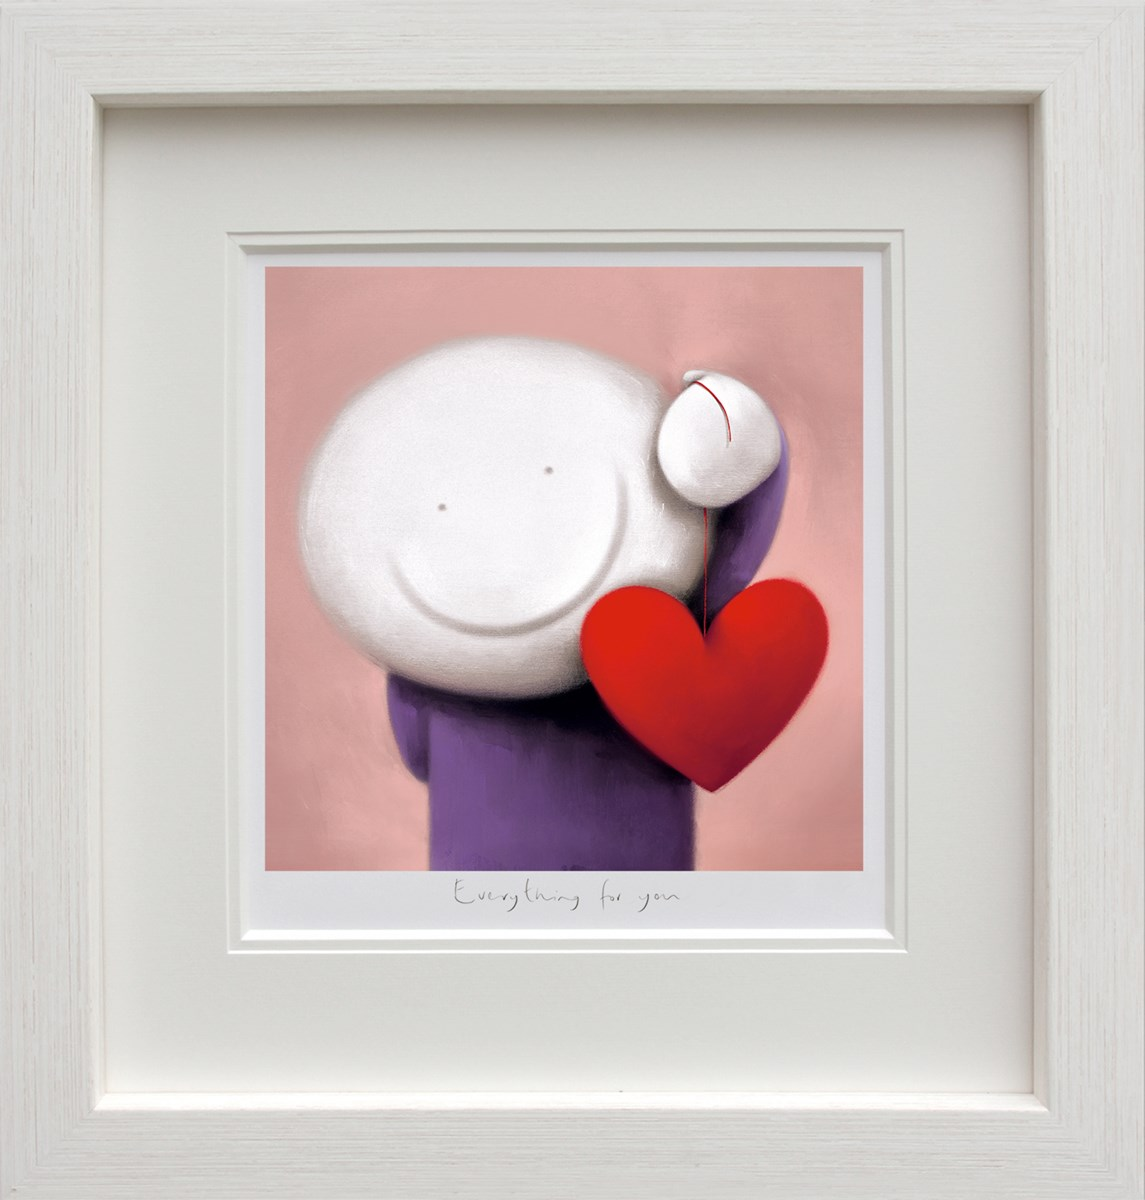 Everything For You by Doug Hyde